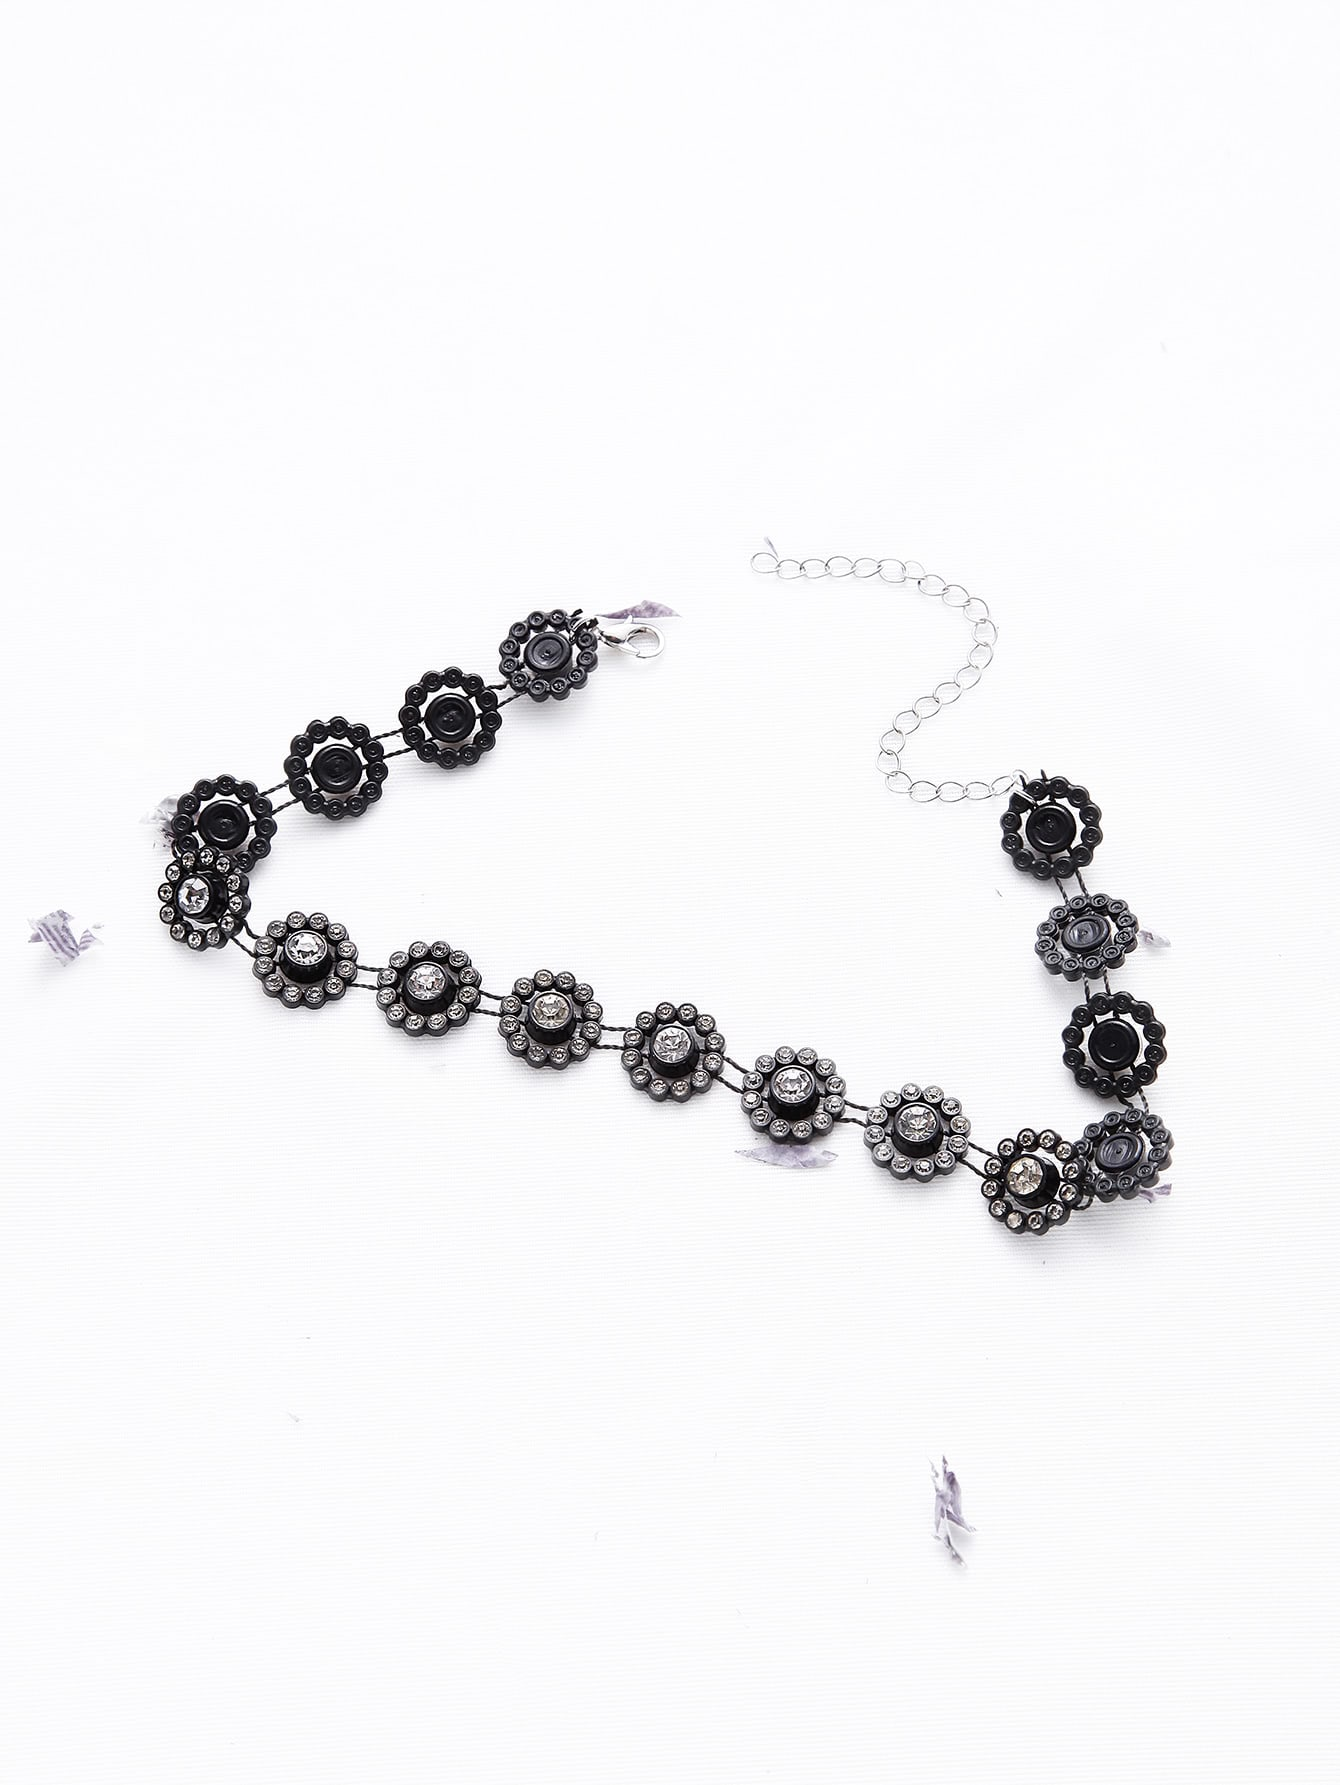 Black Flower Shaped Rhinestone Statement Choker necklaceNC170318305